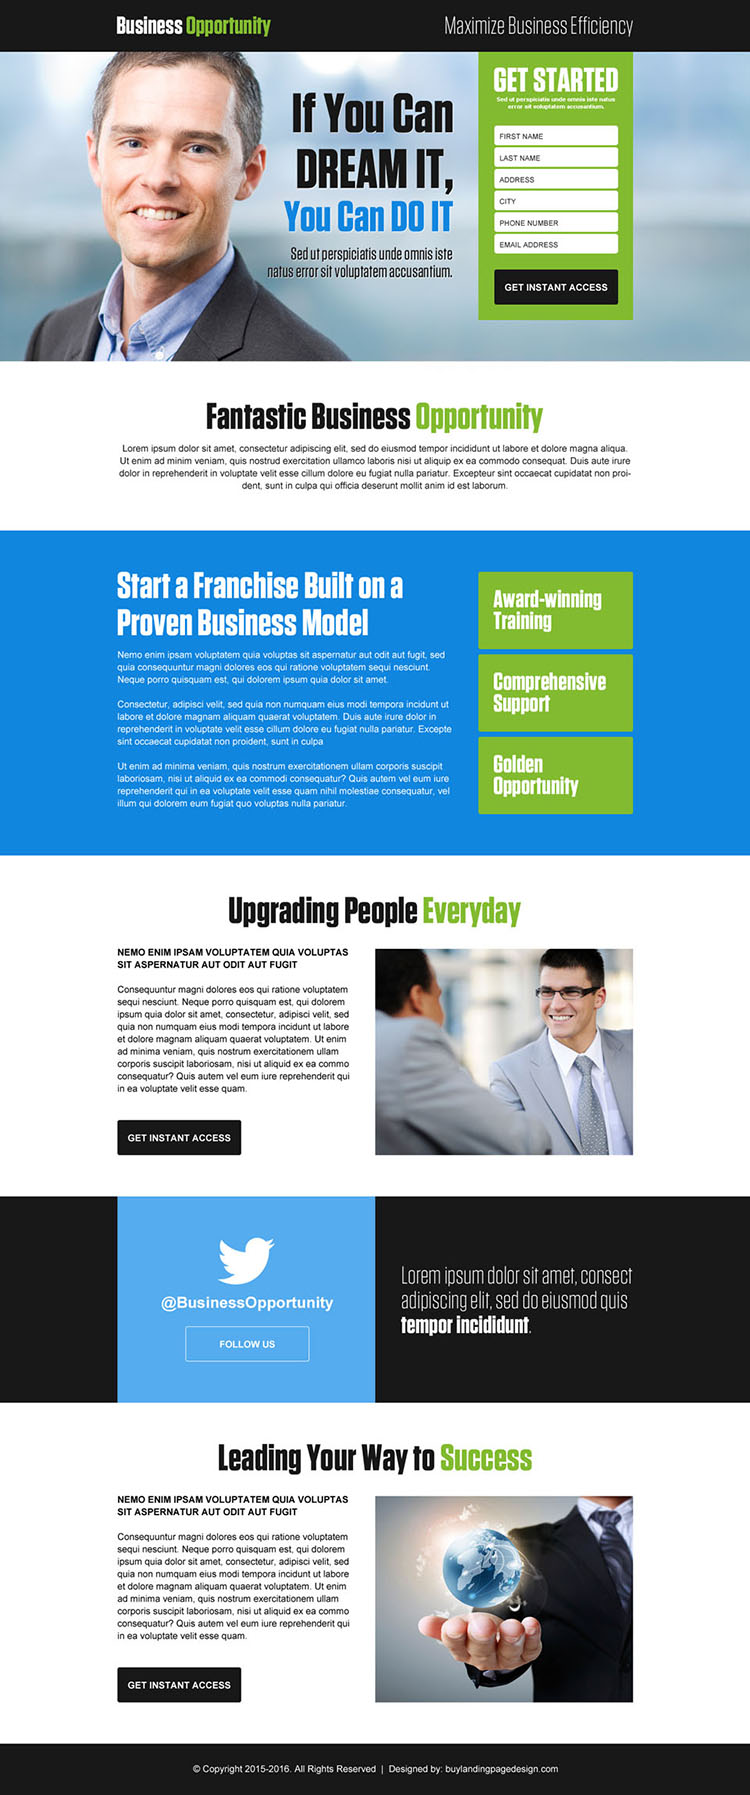 converting business opportunity responsive landing page design template